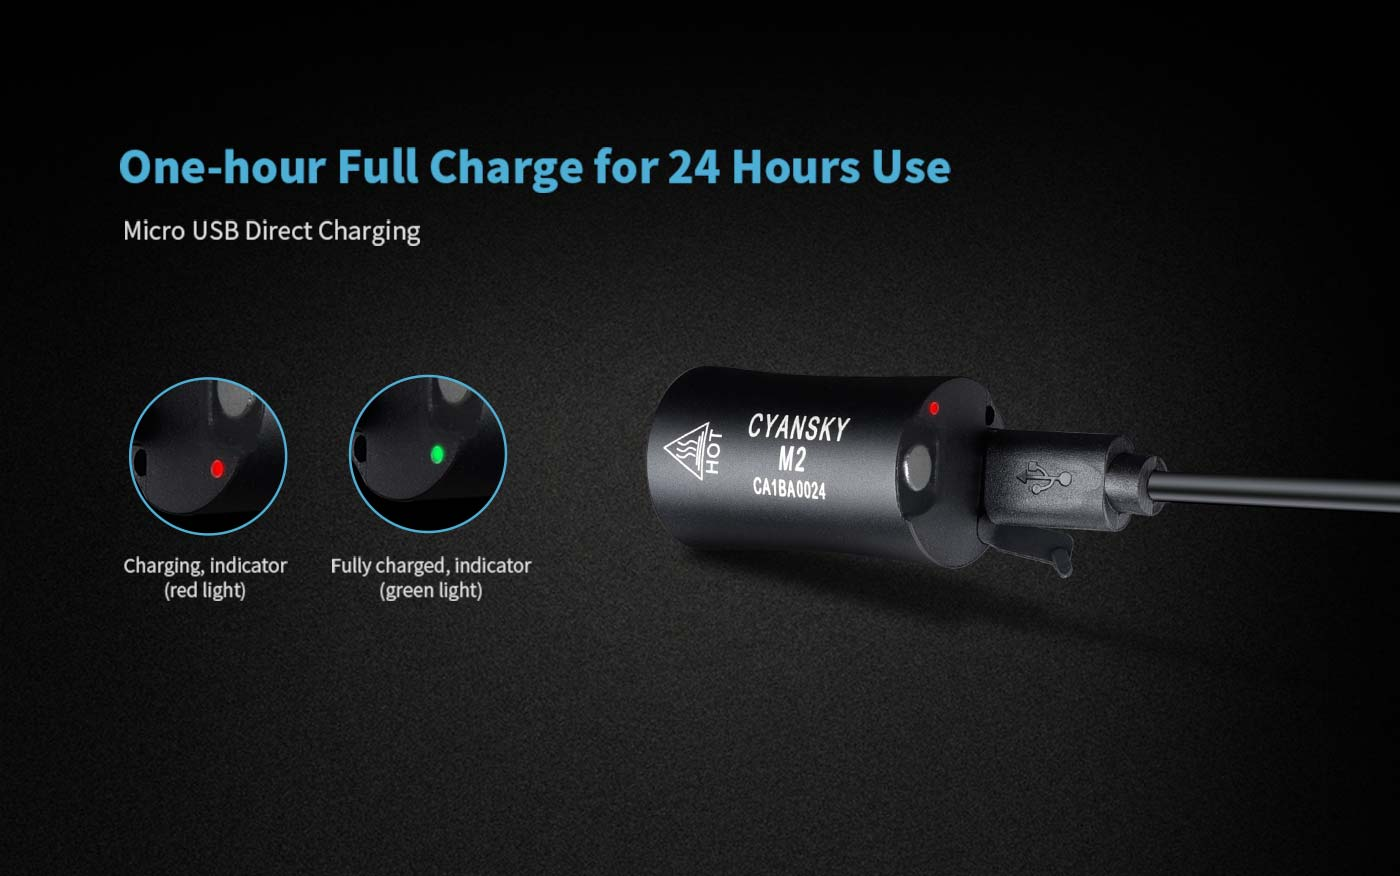 fast charging keychain flashlight, rechargeable keychain flashlight, led flashlight keychain